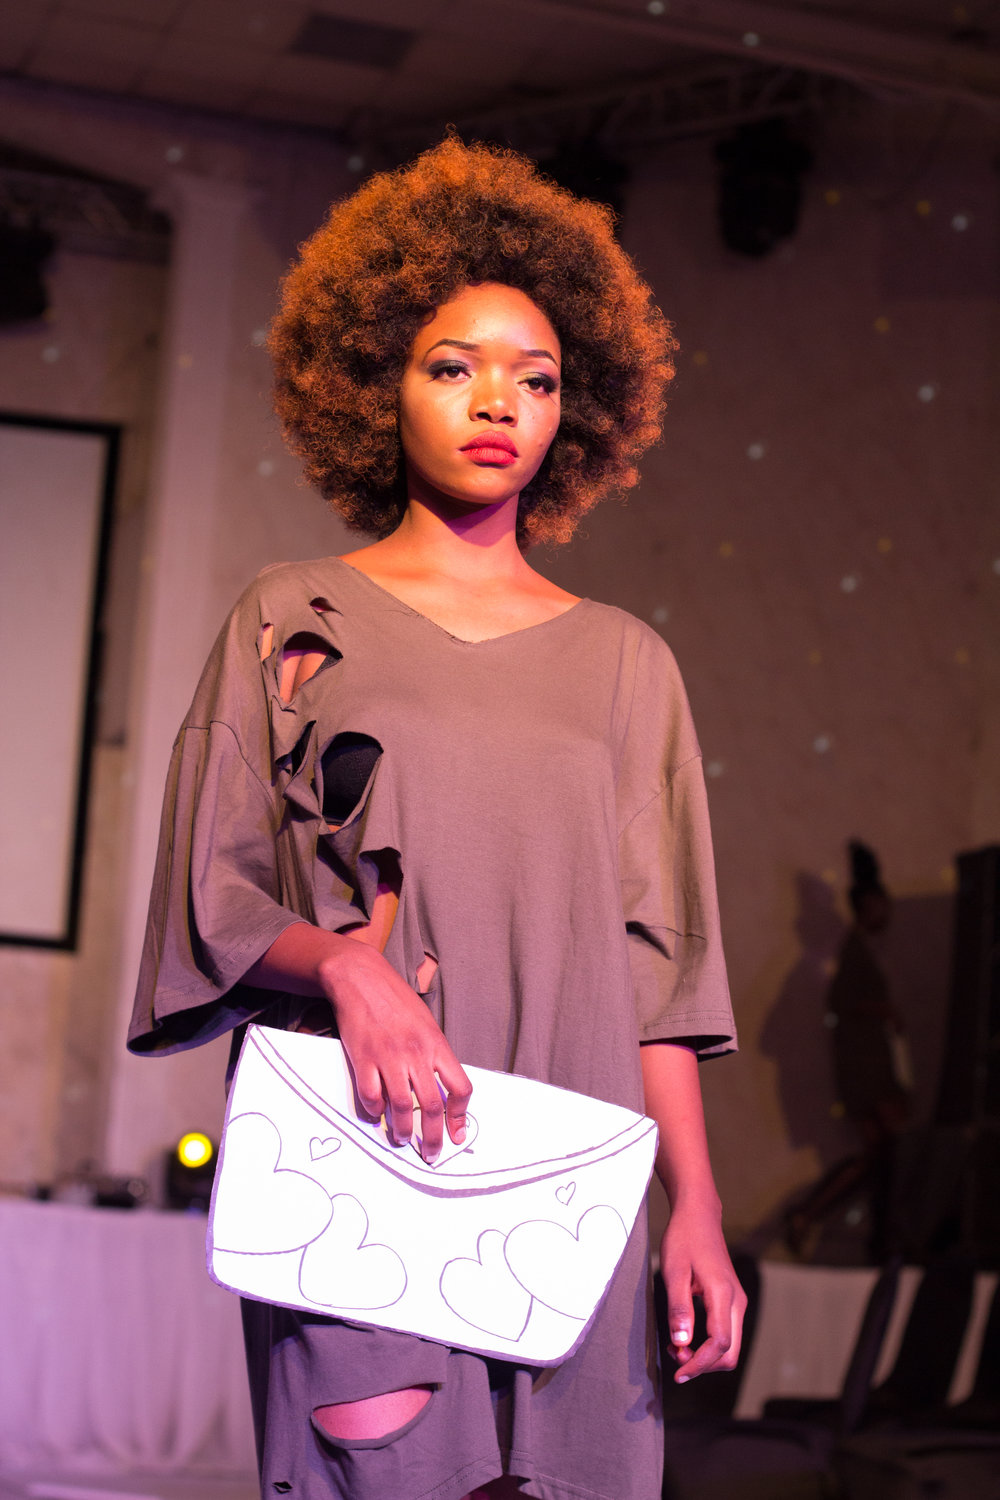 Nigerian Model in Pre-Show @ The Eleventh Fashion Show wearing VonRay Designs Distressed Tee Dress and Paper-doll bag Illustrated by Dennis Robinson II of D2Artz & VonRay Designs; PHOTOGRAPHER- Ebiye Wilson Jeke of Wilson Photography (@wilsonjekephotography)